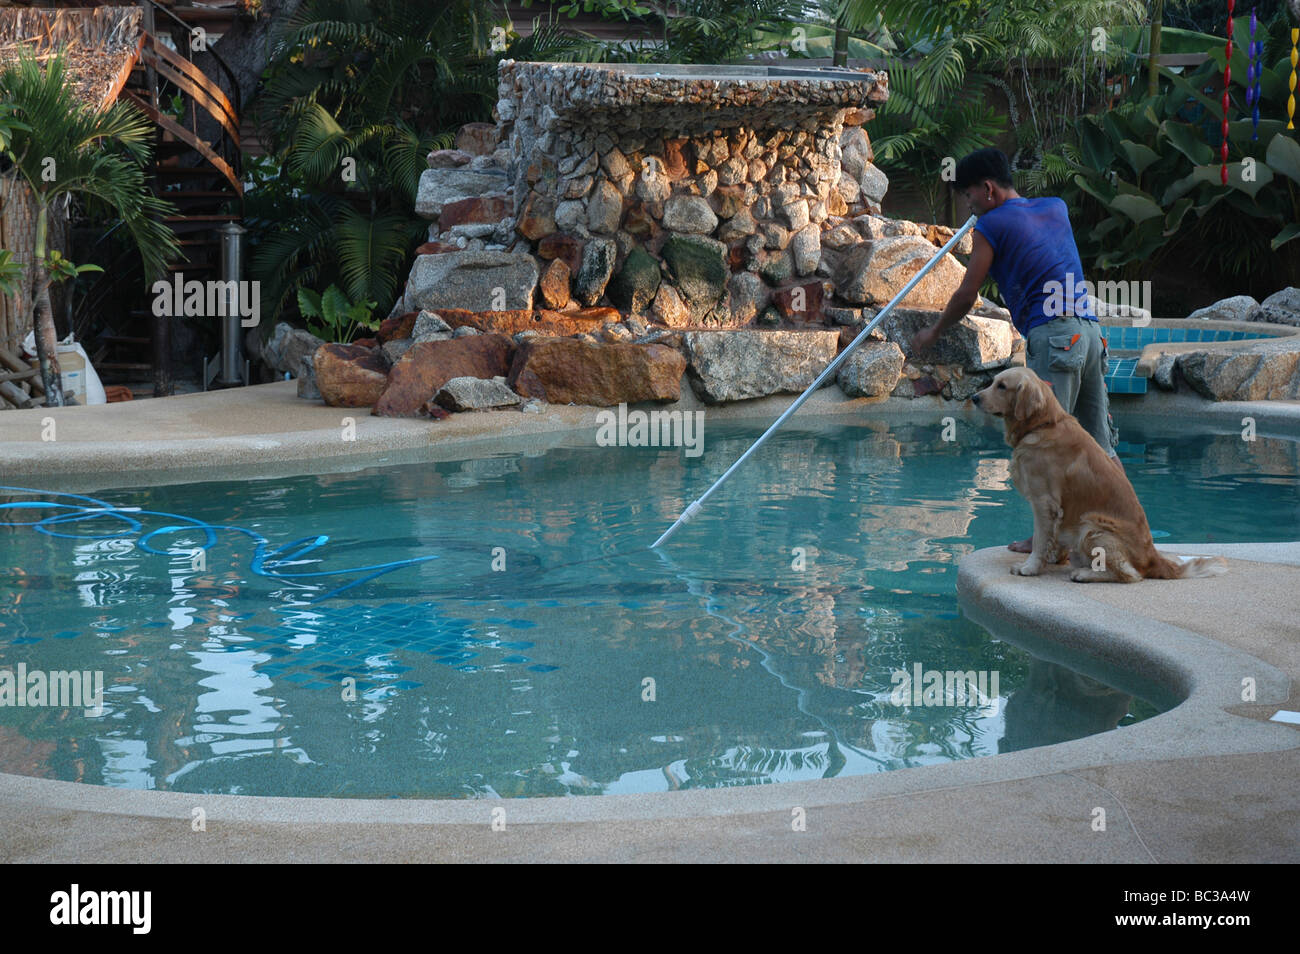 Kidney Shaped Pool Stock Photos Kidney Shaped Pool Stock Images